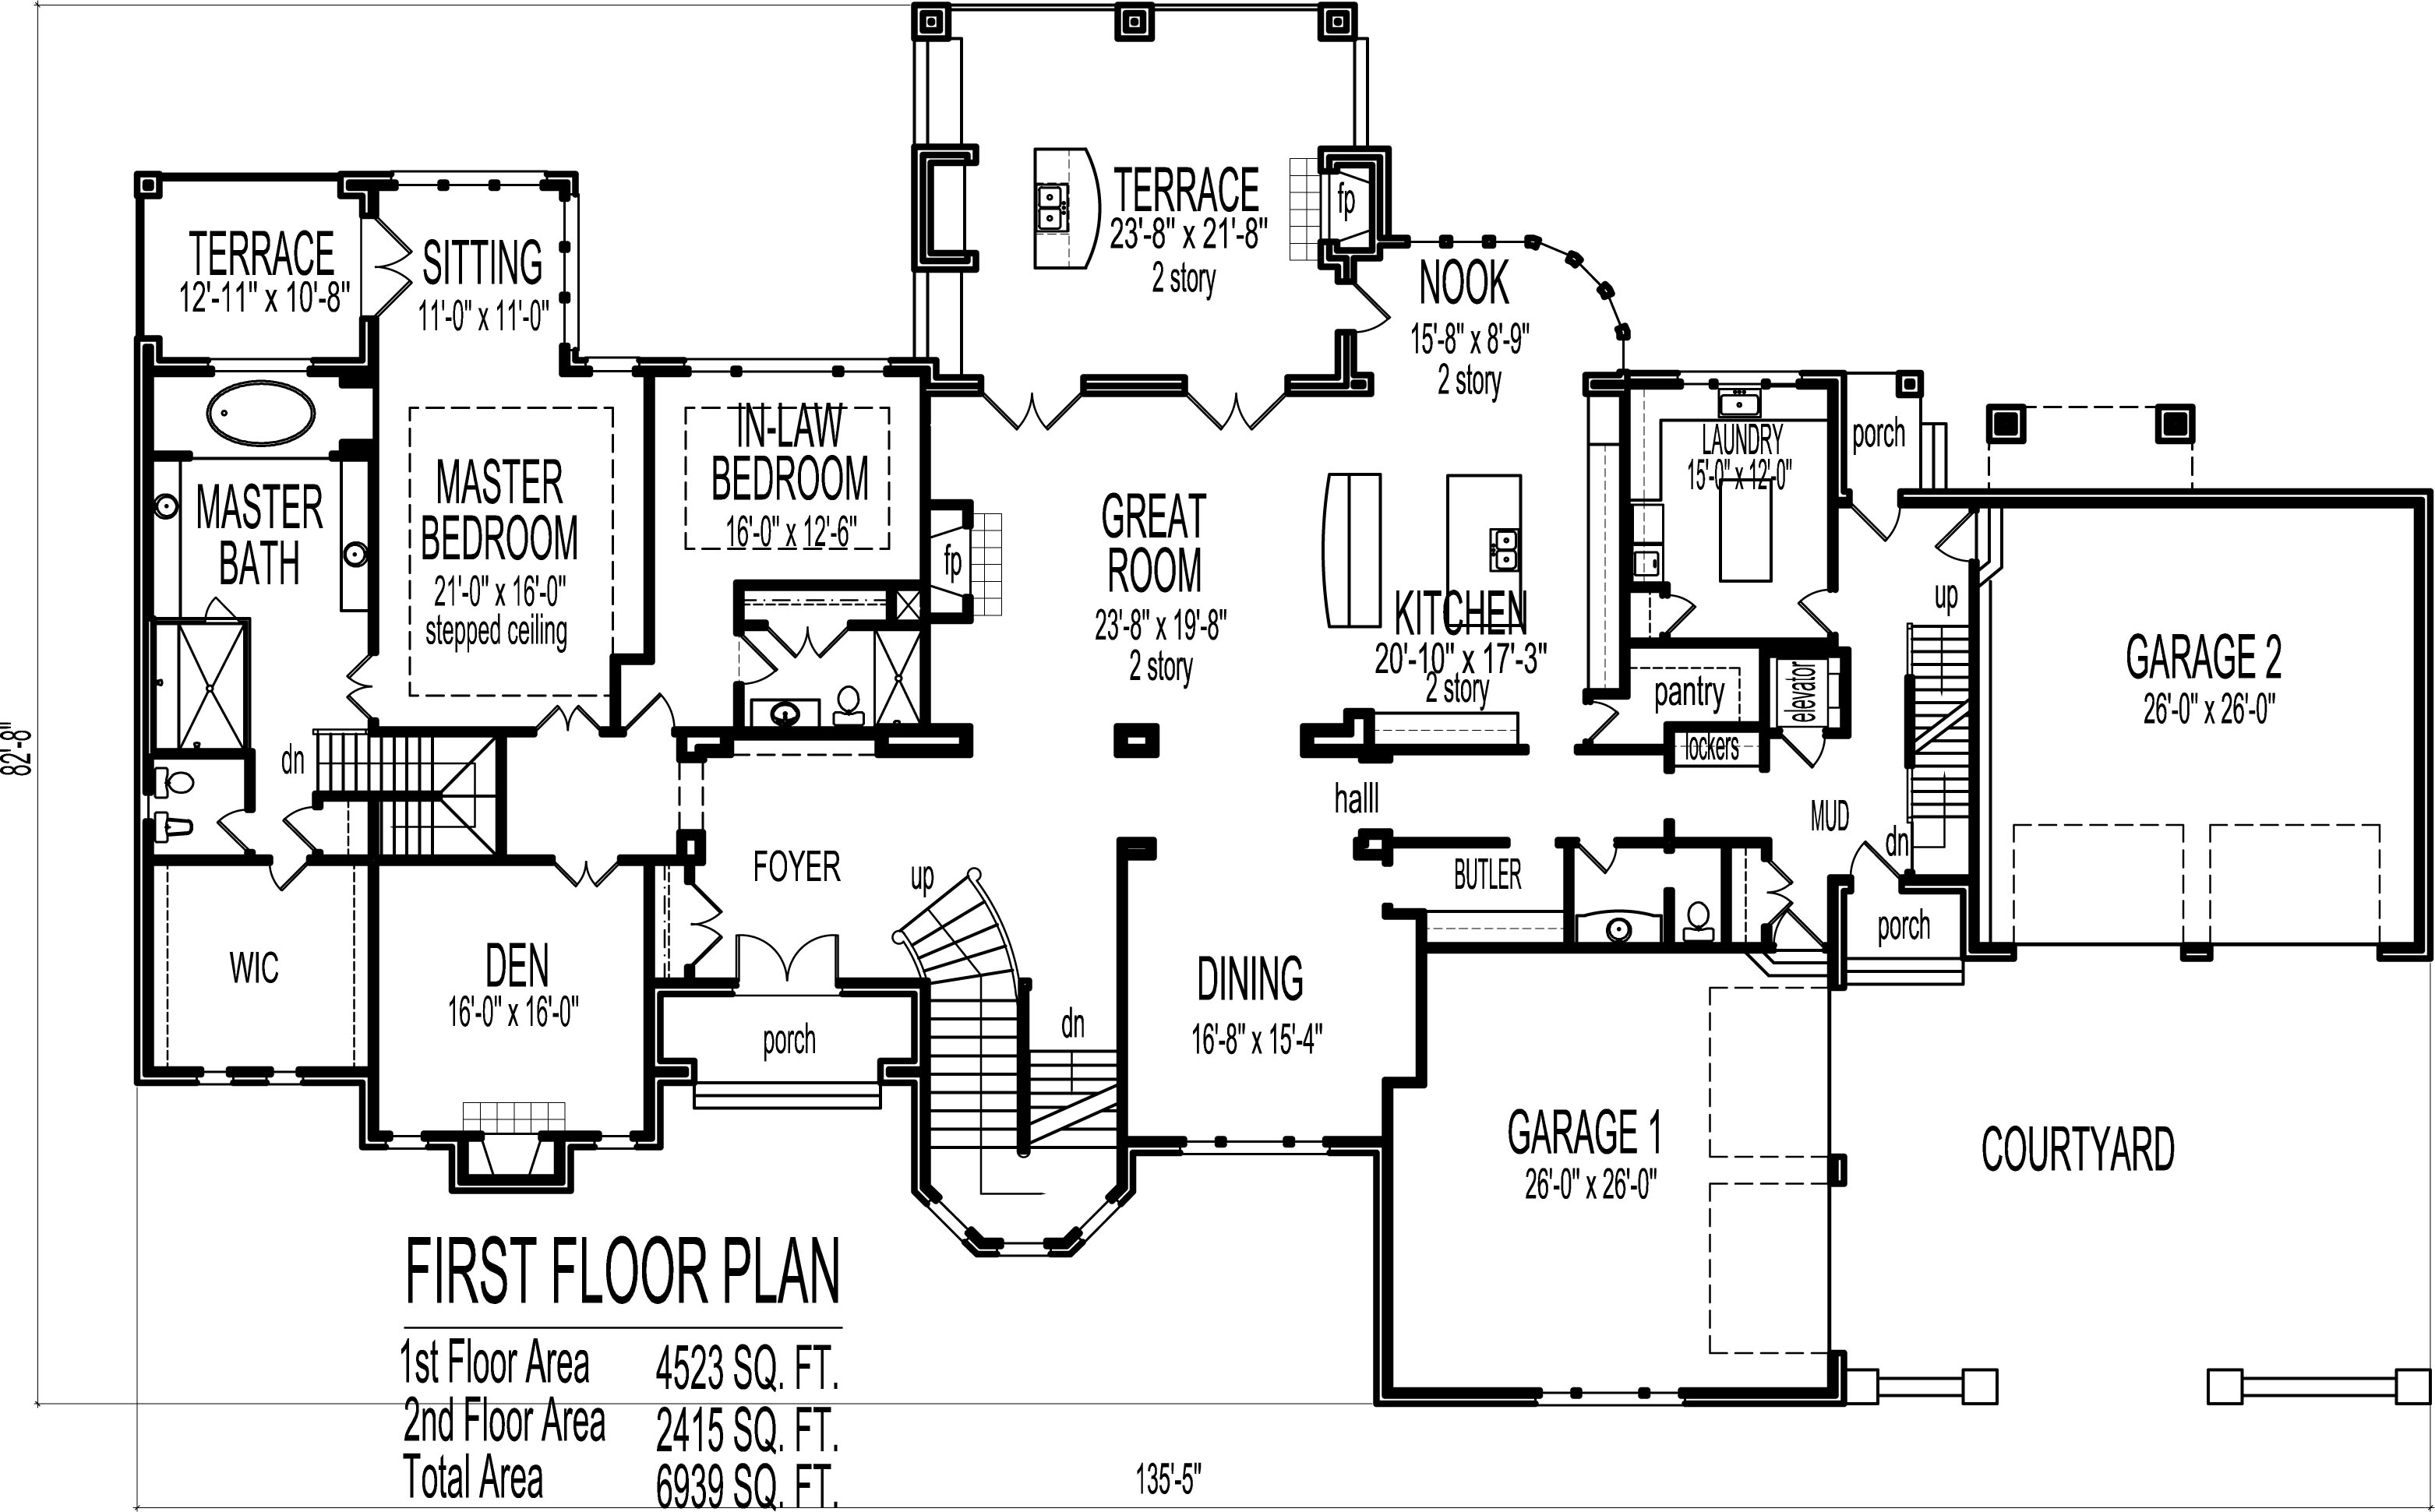 Dream House Floor Plans Blueprints 2 Story 5 Bedroom Large ... on simple 5 bedroom house plans, simple 4 bedroom house plans, 4-bedroom brick house plans, 5 bedroom house with 4 car garage, 5 bedroom house blueprints, 5 bedroom houses with stone, big 5 bedroom house plans, cottage house plans, 5-bedroom victorian house plans, 3 bedroom house plans, traditional house plans, modern house plans, floor plans, 5 bedroom rambler house plans, 5 bedroom house with pool, 5 bedroom basement house plans, country house plans, luxury home plans, 5 bedroom tri level house plans, new ranch style home plans,